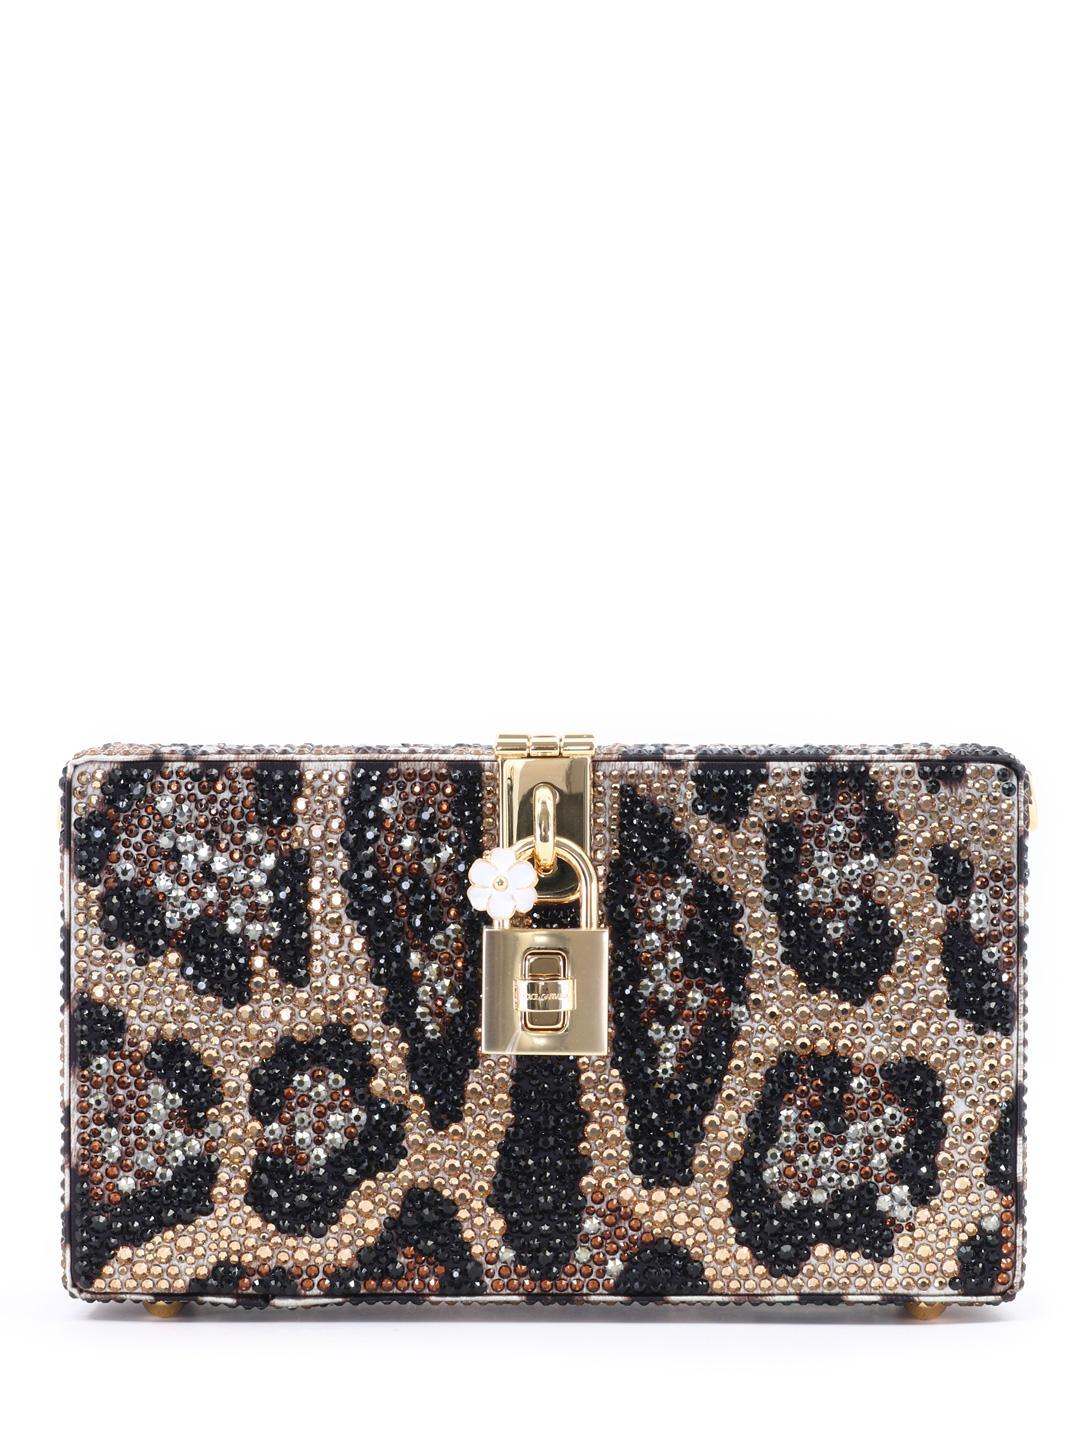 f978b6380c12 Lyst - Dolce   Gabbana Embellished Clutch Bag in Brown - Save 36%